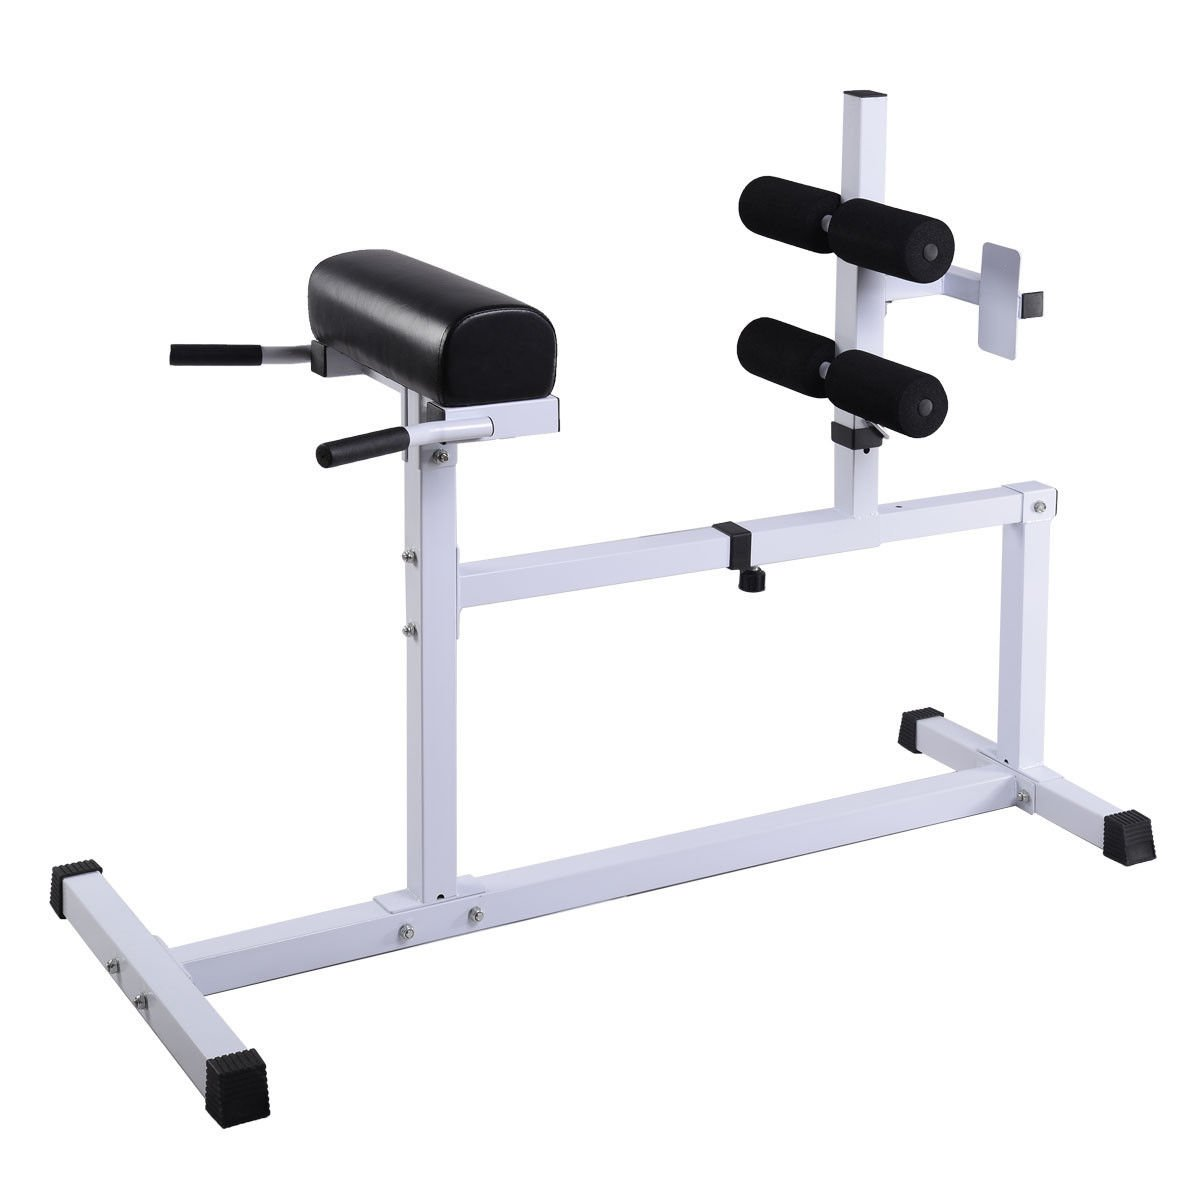 Lower Back Extension Bench 28 Images Roman Chair Hyperextension Bench Jd 3 1 Walmart Com 45